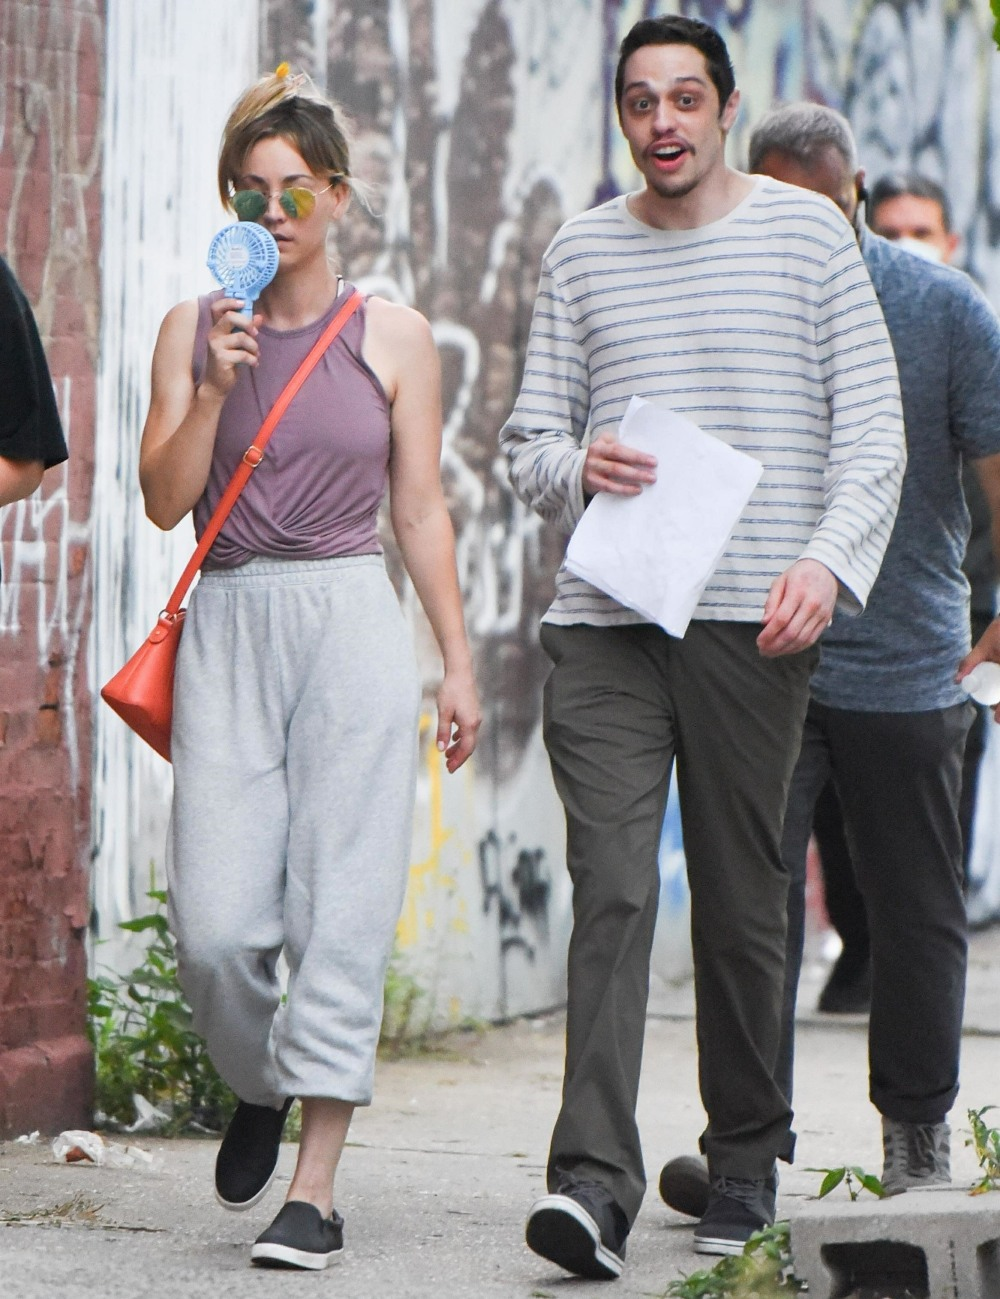 Pete Davidson and Kaley Cuoco filming 'Meet Cute' in NYC